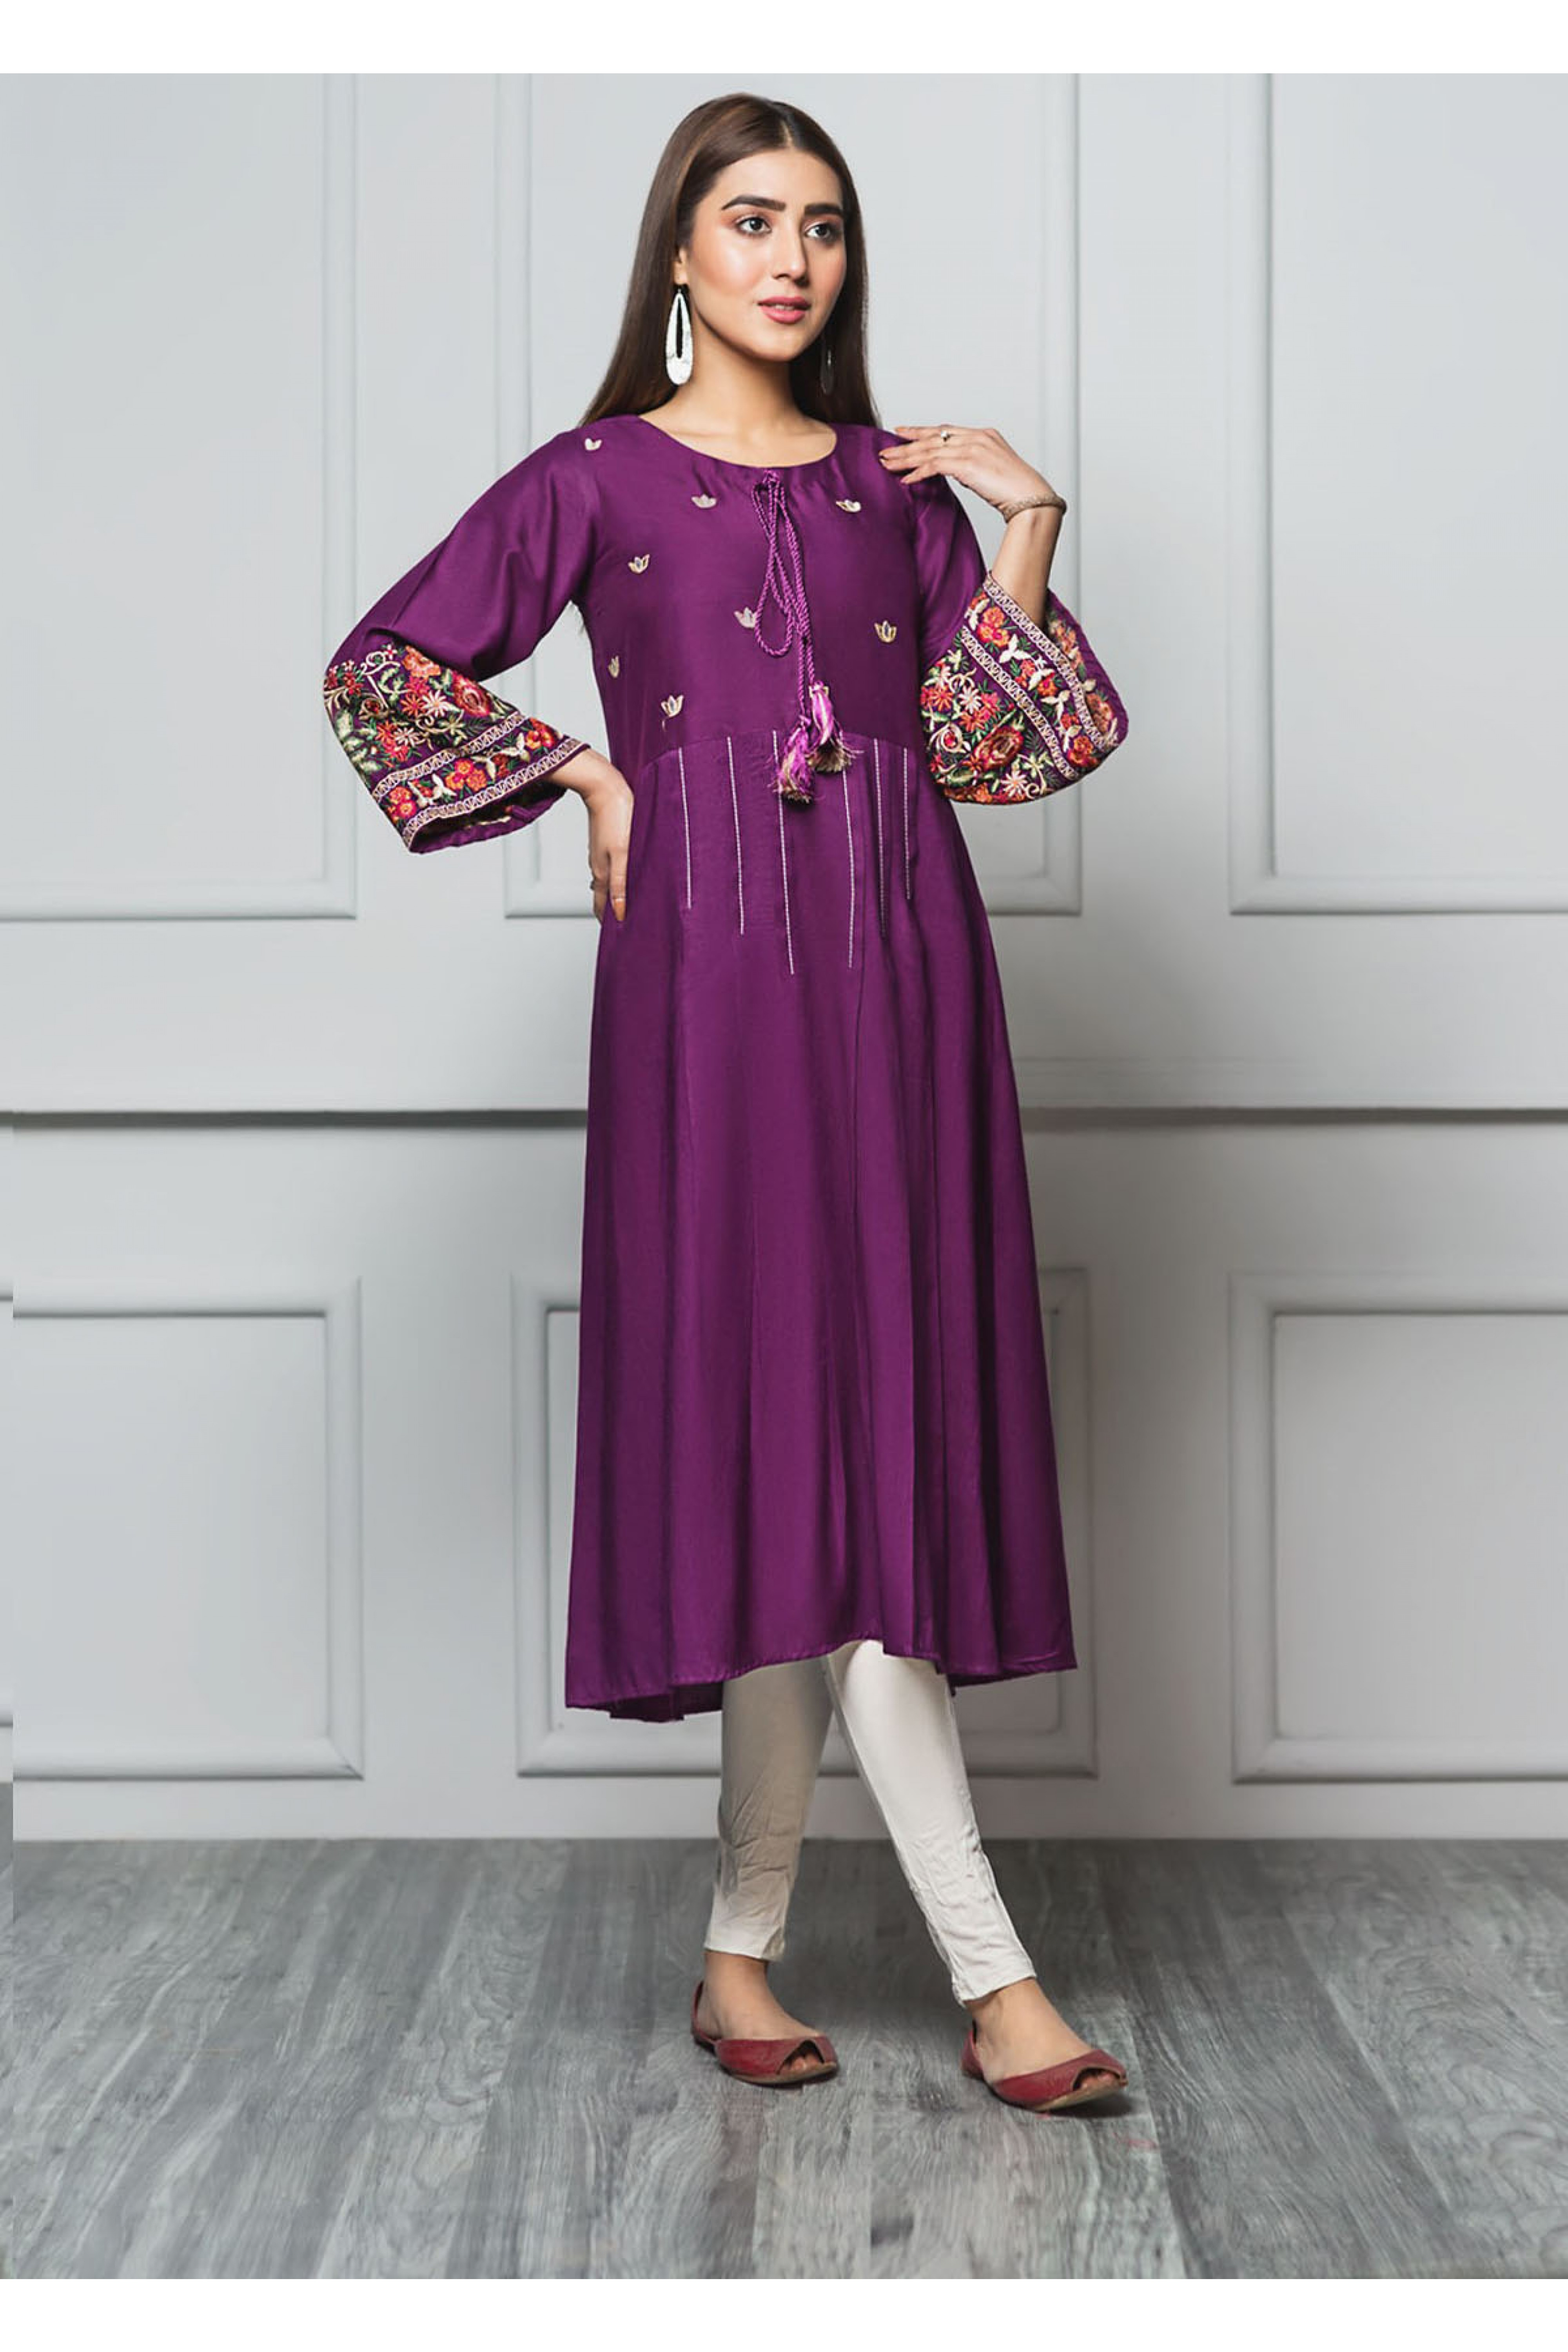 RICH LAVENDER(Embroidered Frock)